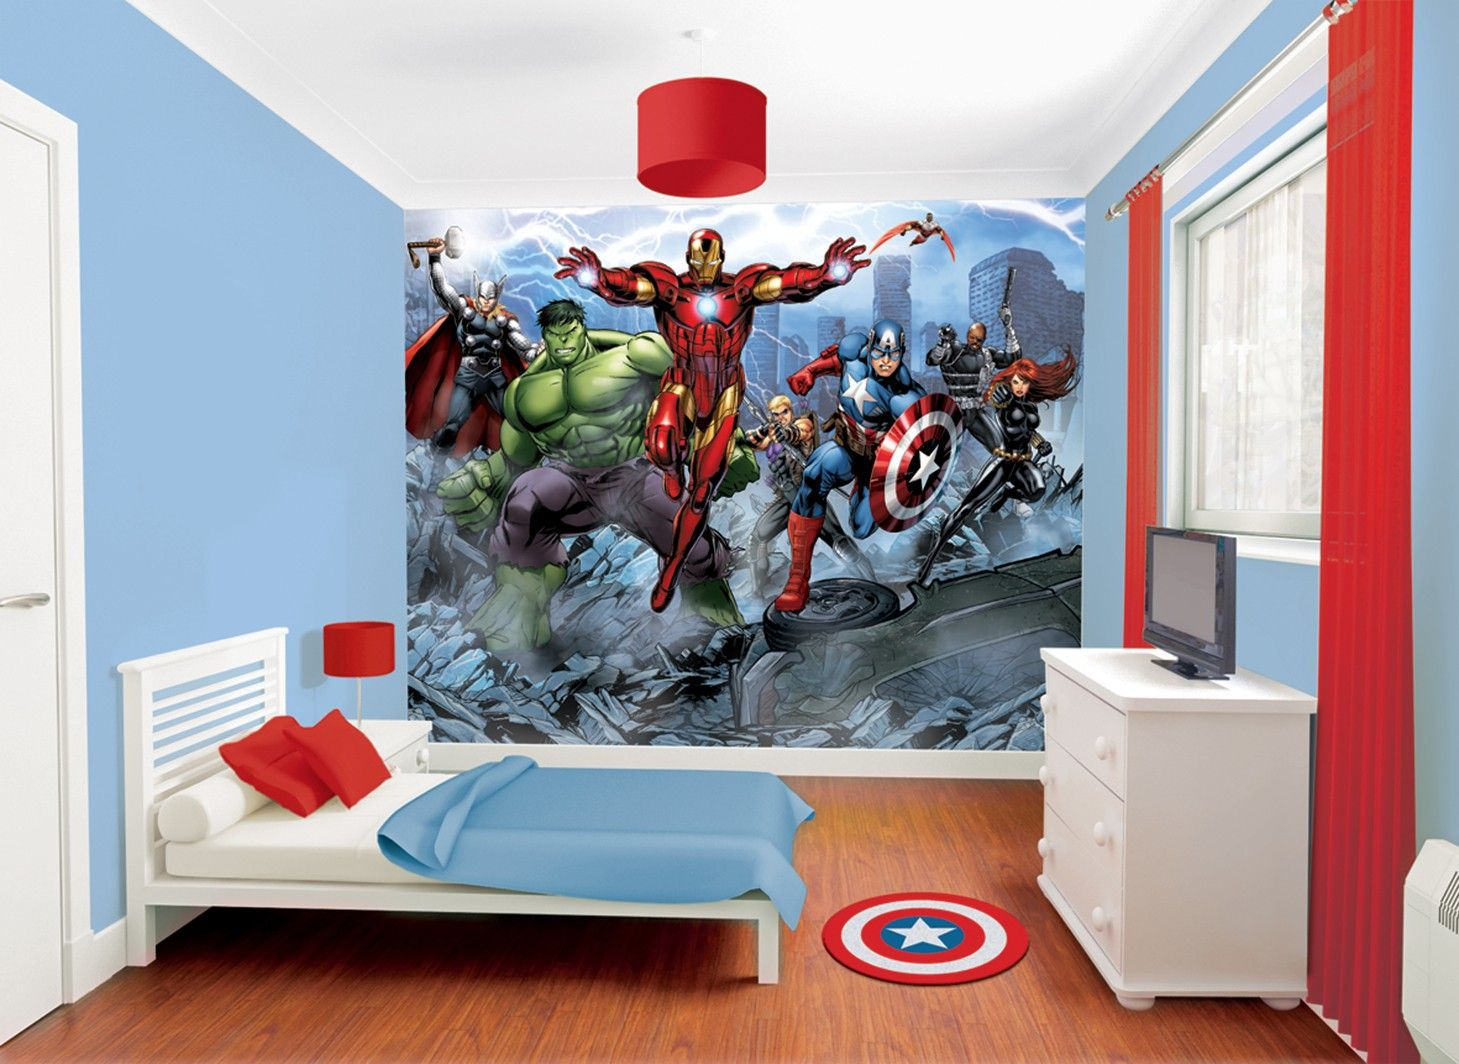 Marvel Themed Bedroom Marvel Avengers Wallpaper Murals.the Boys Need This For Their